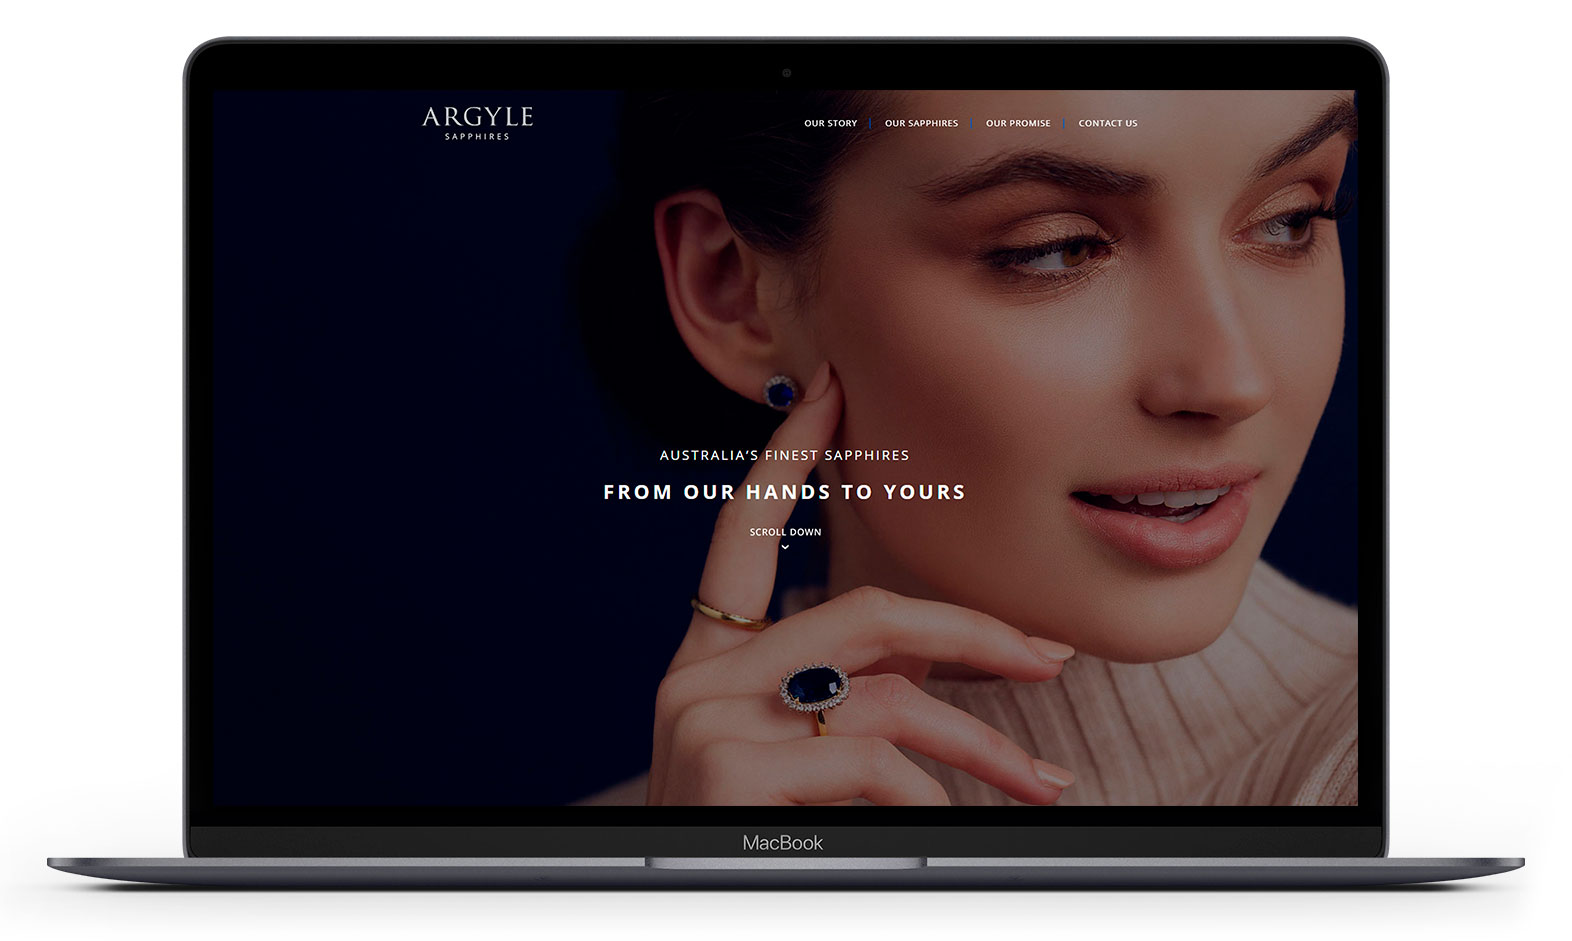 Argyle Sapphires' website design displayed responsive devices